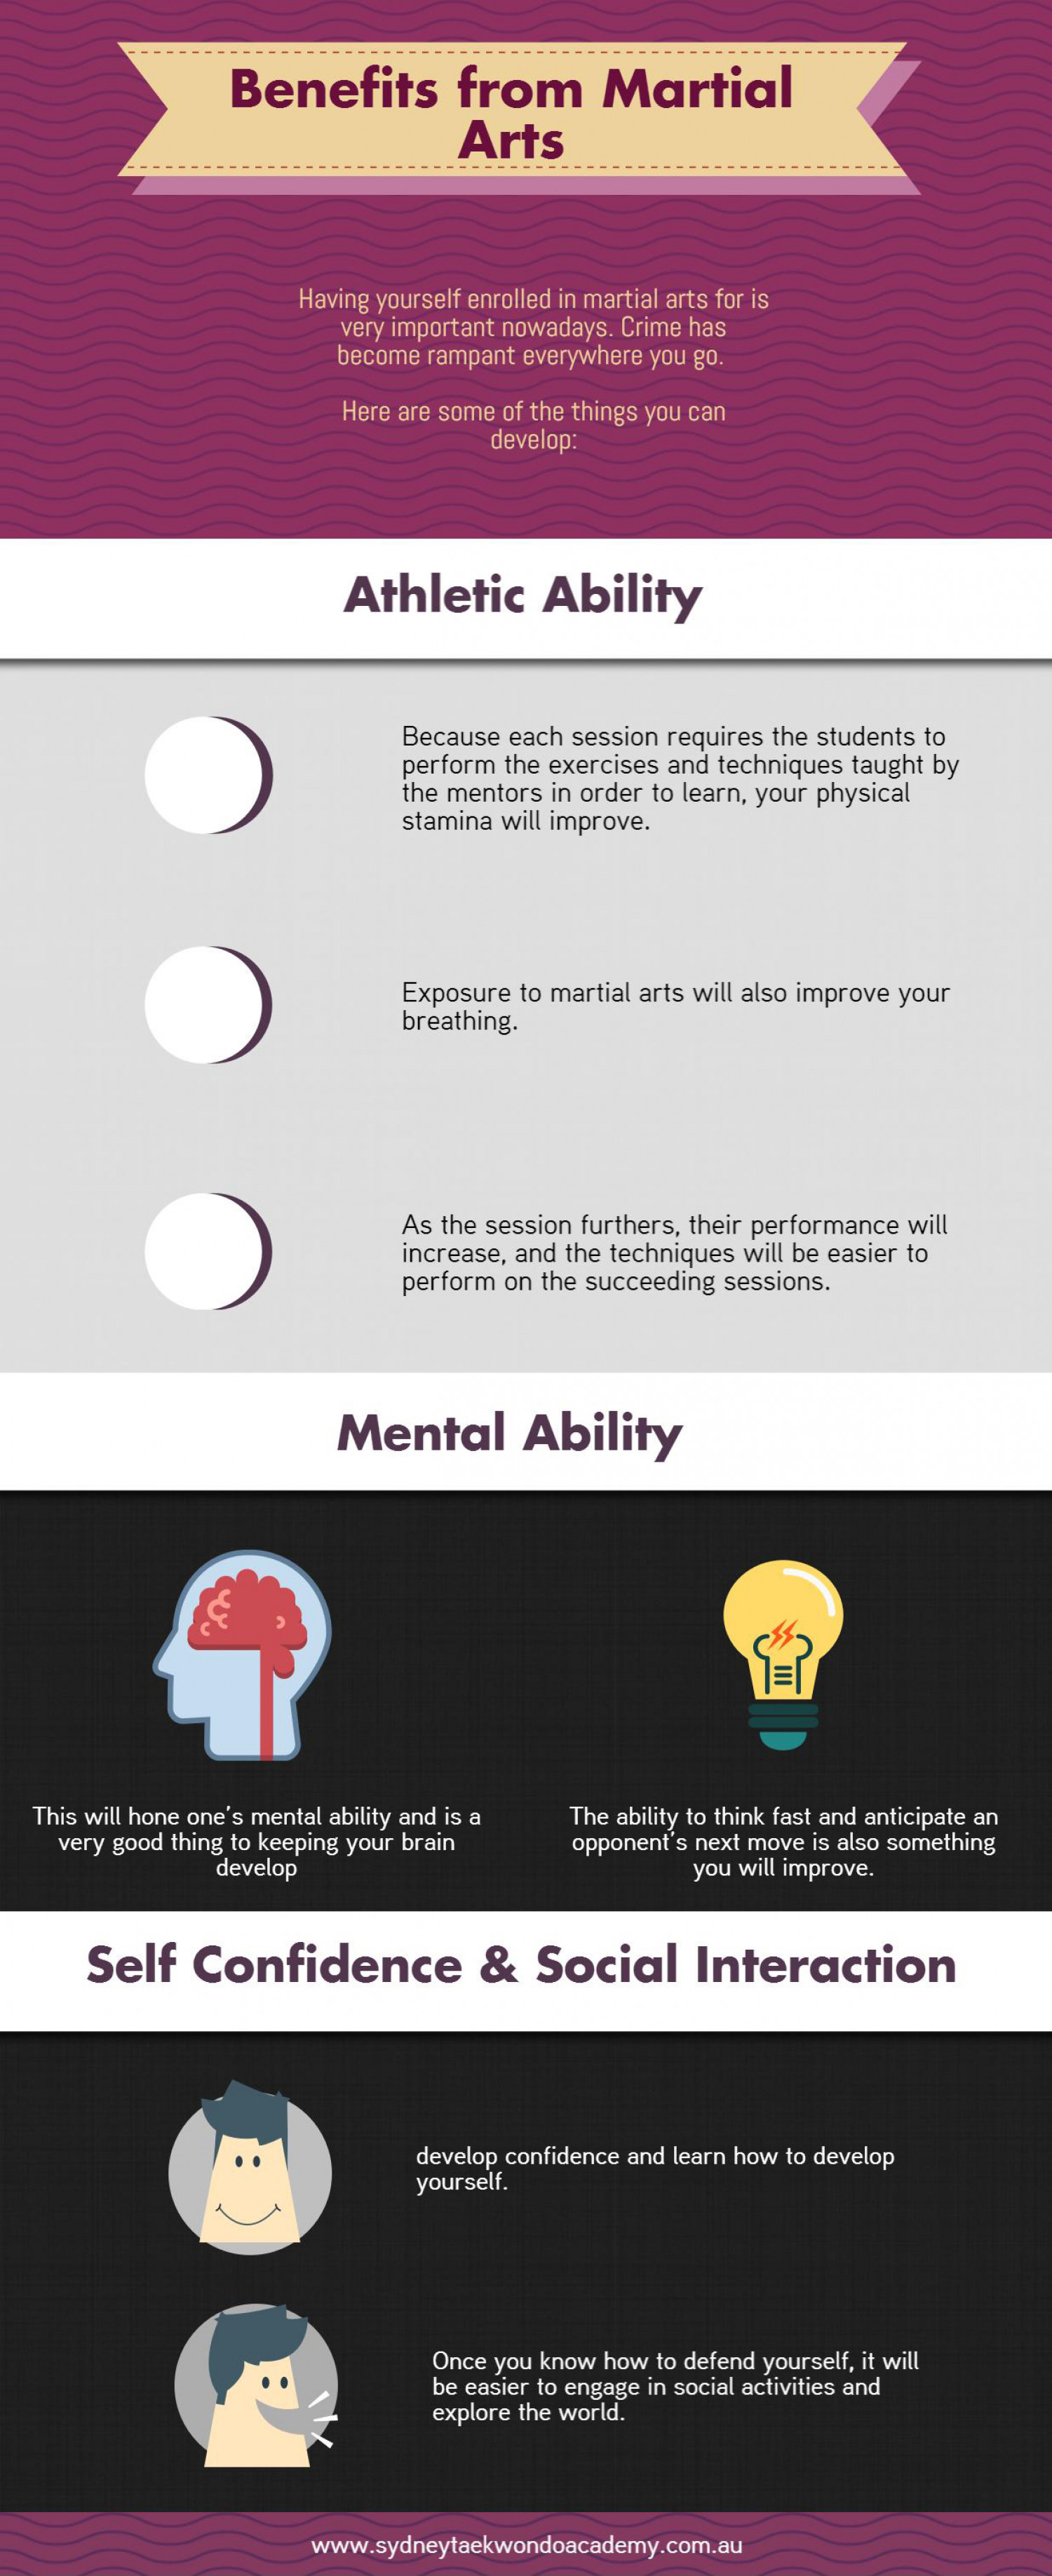 Benefits from Martial Arts Infographic